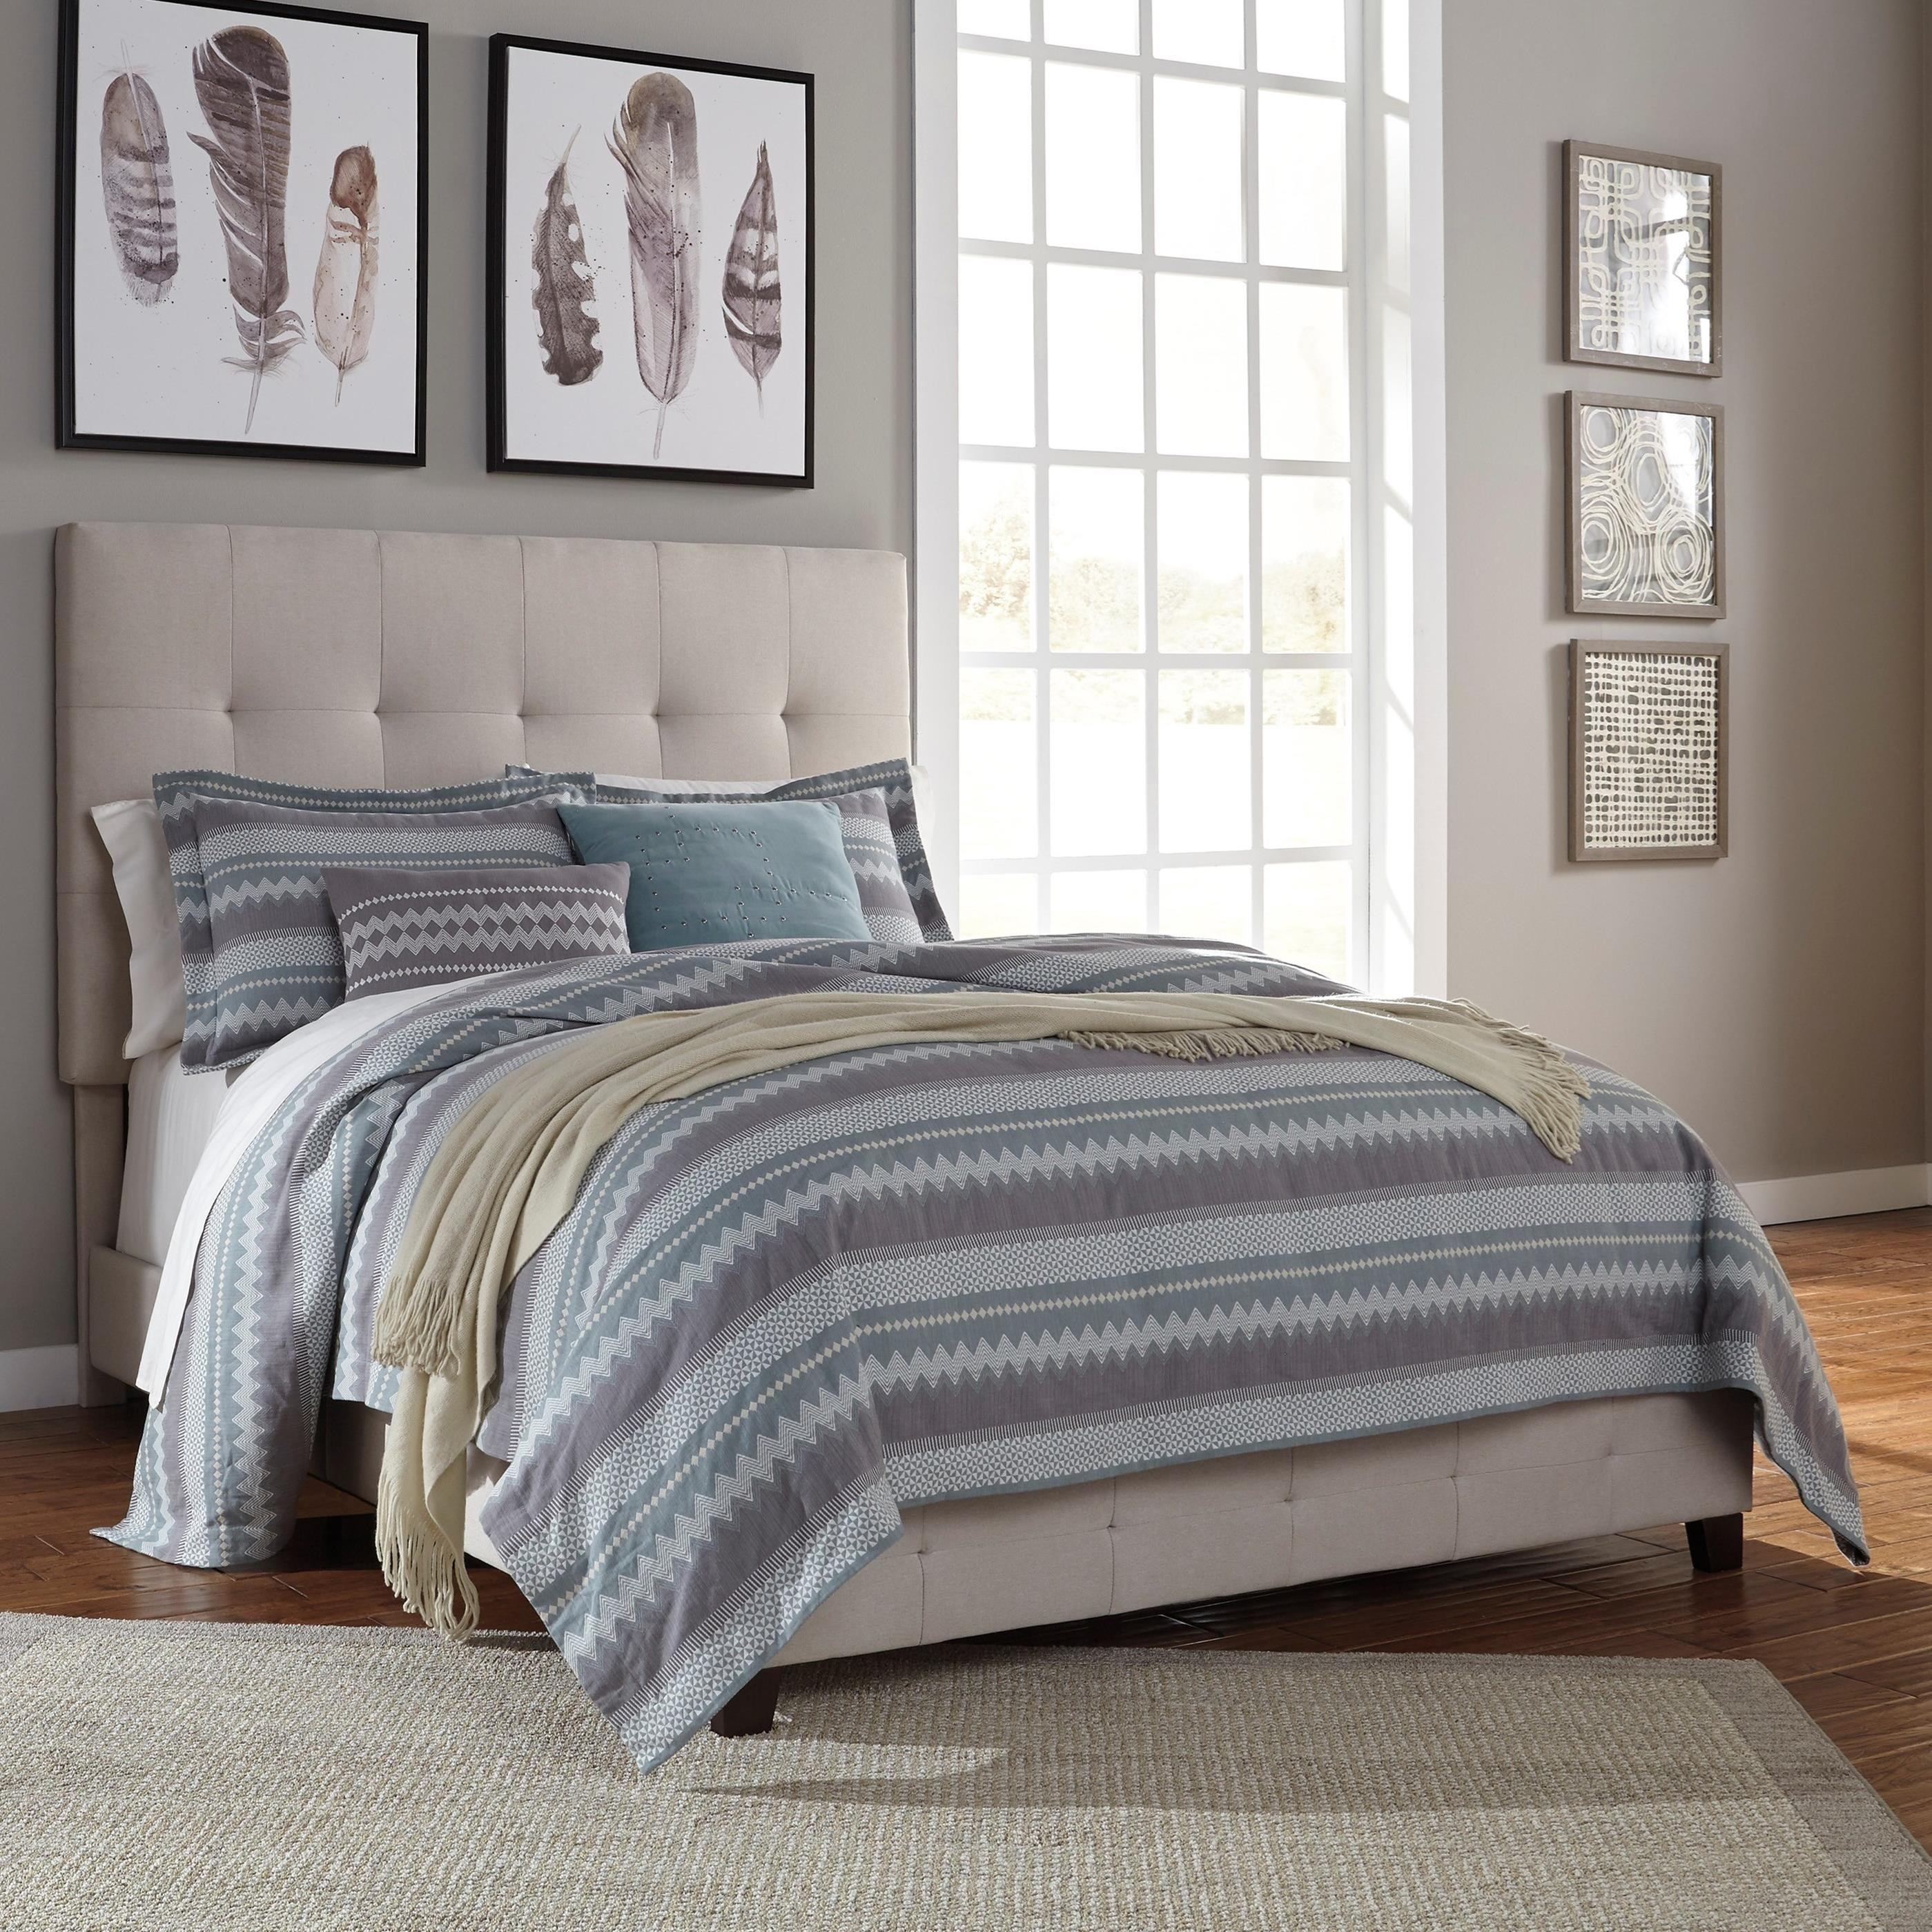 Signature Design By Ashley Dolante Queen Upholstered Bed In Cream Fabric Royal Furniture